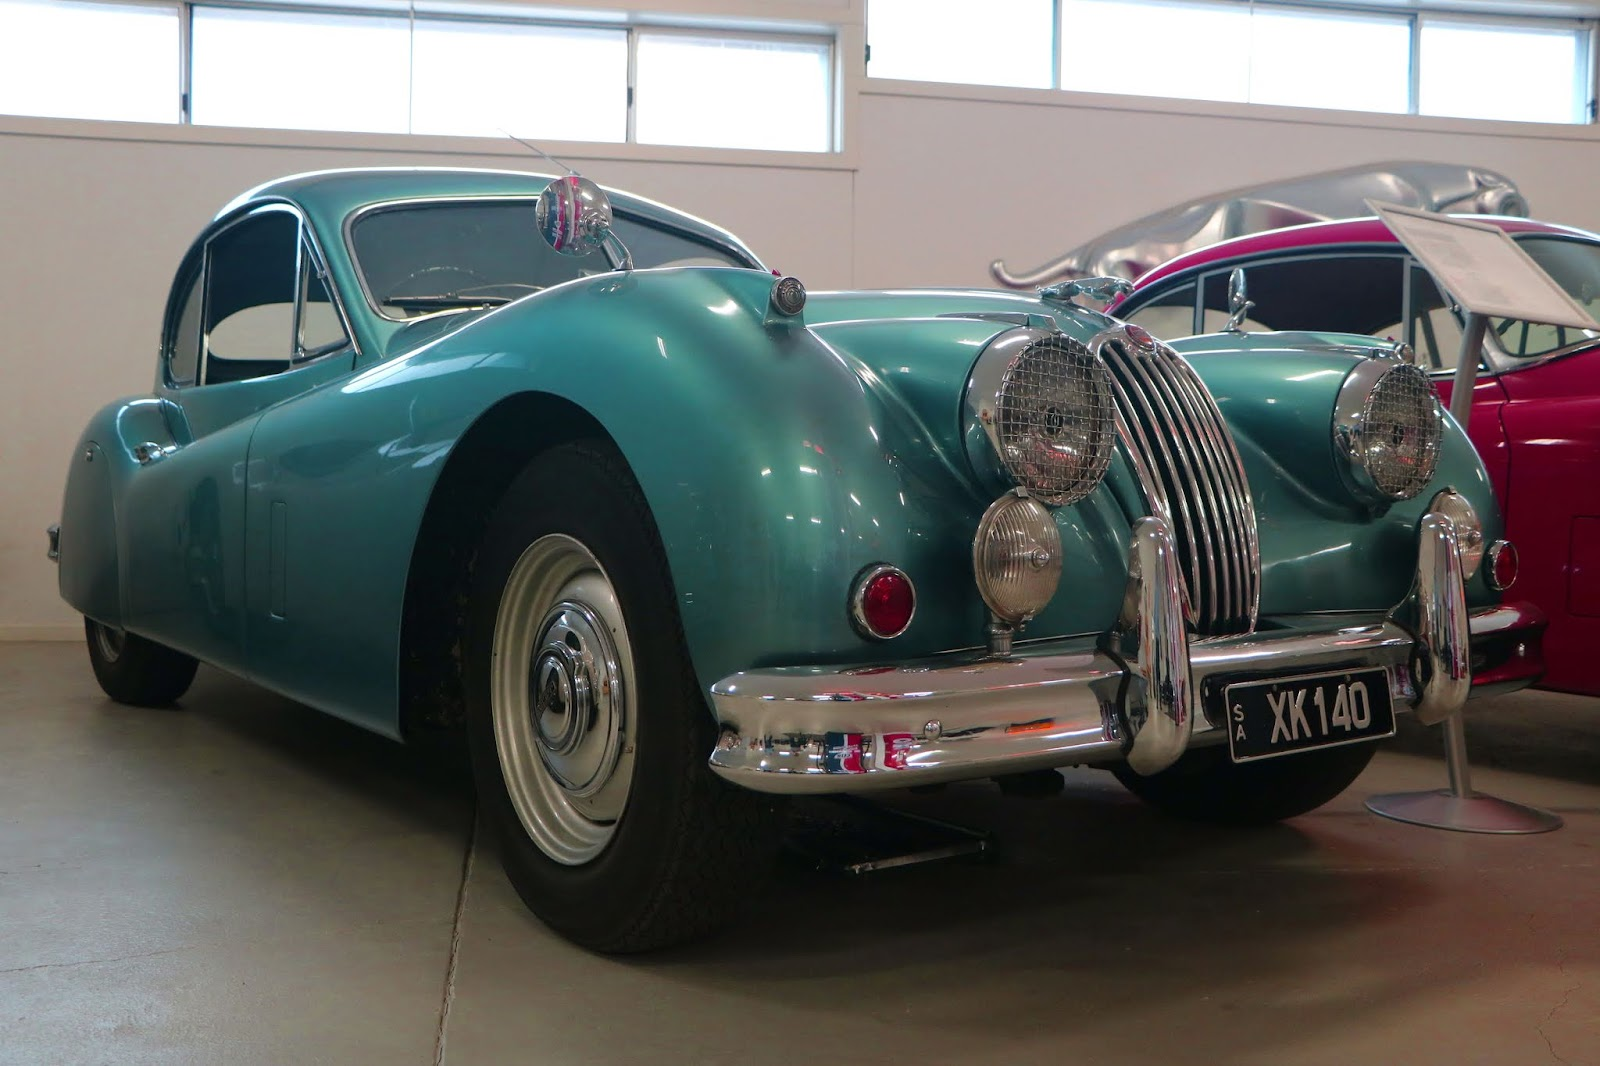 Carl_Lindner_Collection - 1953 Jaguar XK140 Coupe 08.JPG